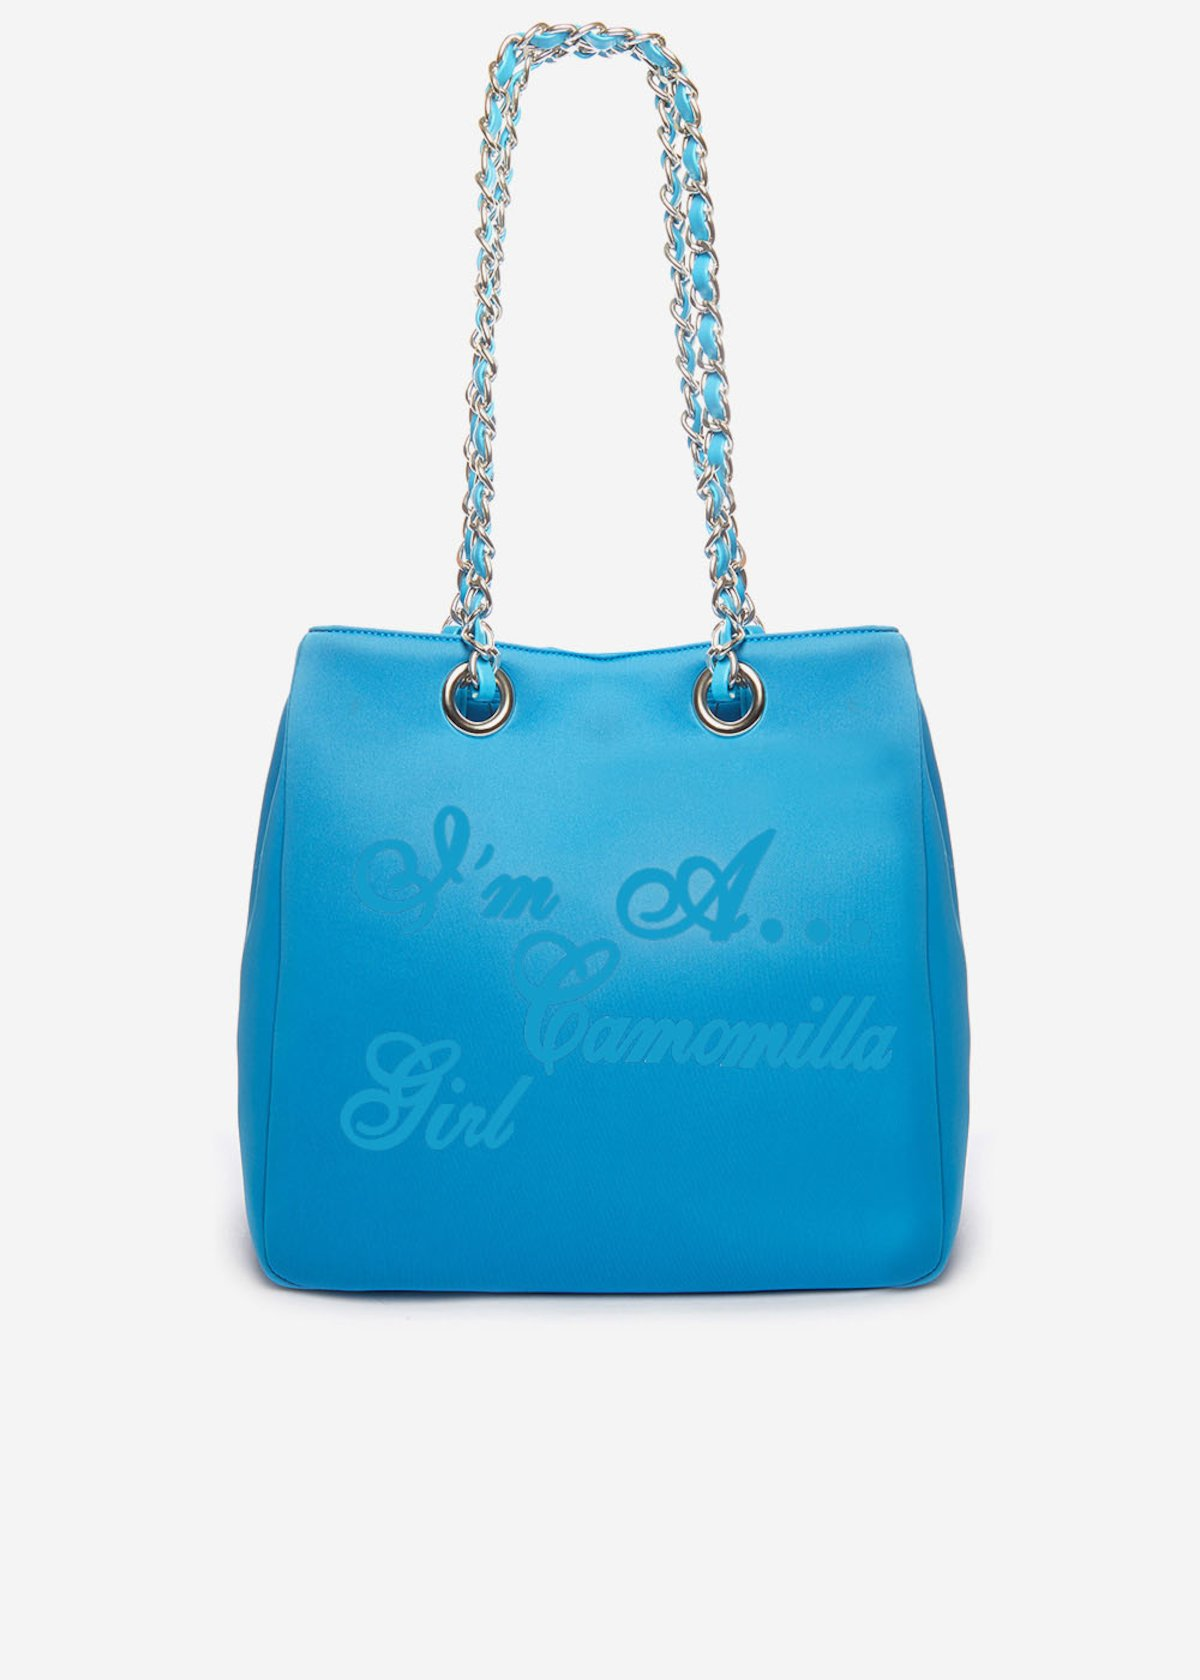 Minineopr shopping bag with logo - Aquarius